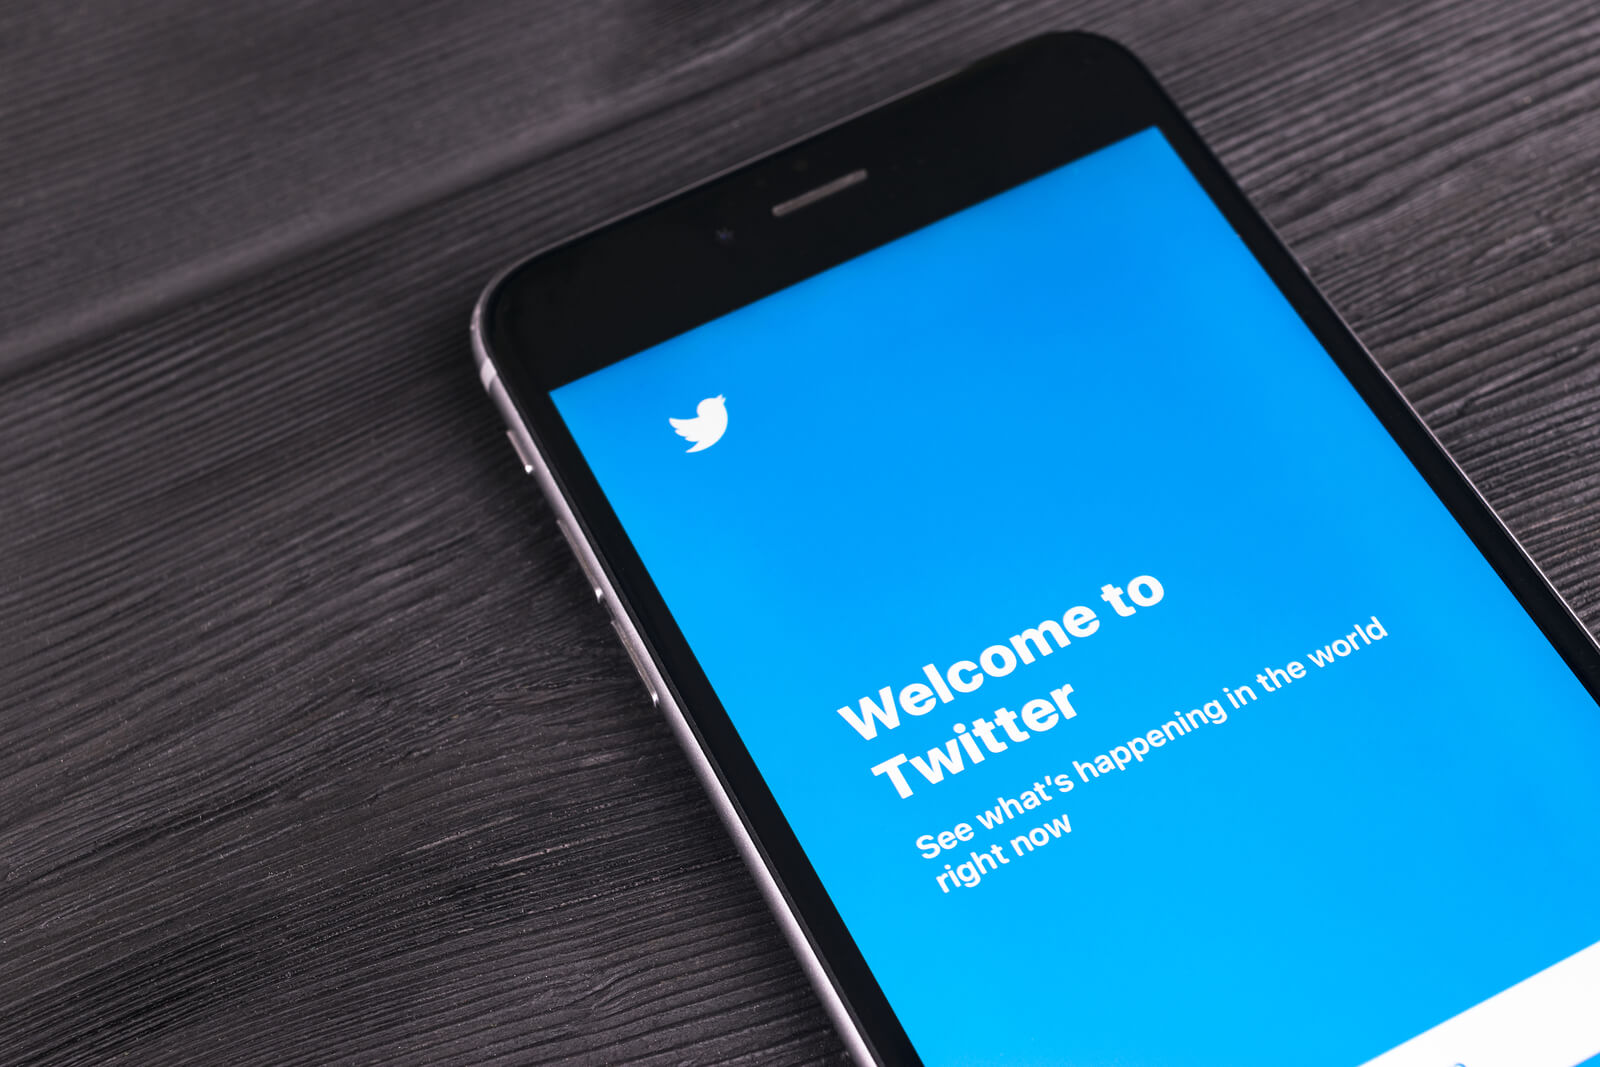 Como o update do Twitter pode afetar as empresas - Blog Mercado Binário